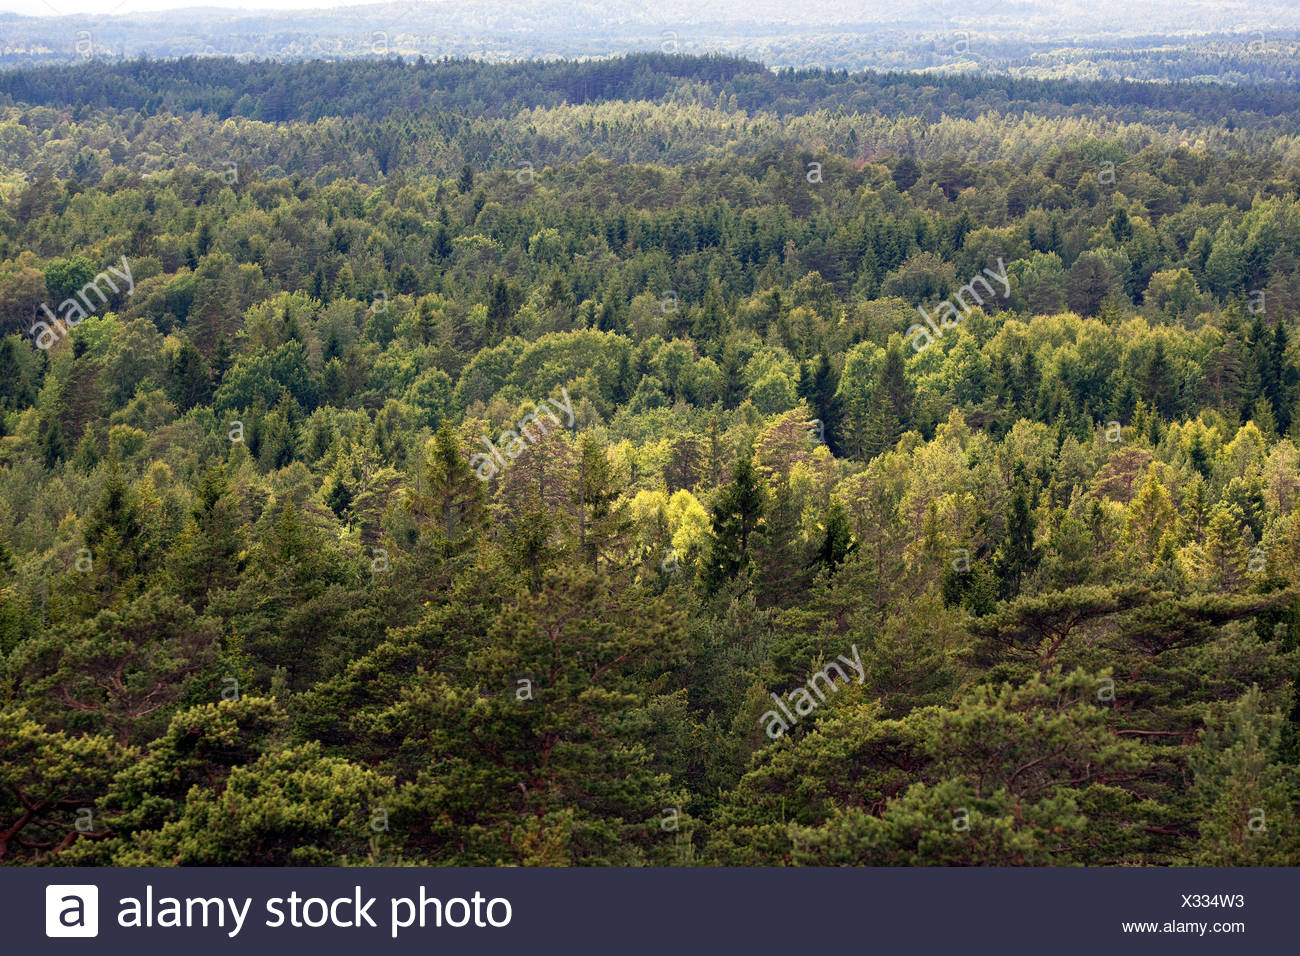 High angle view of forest - Stock Image